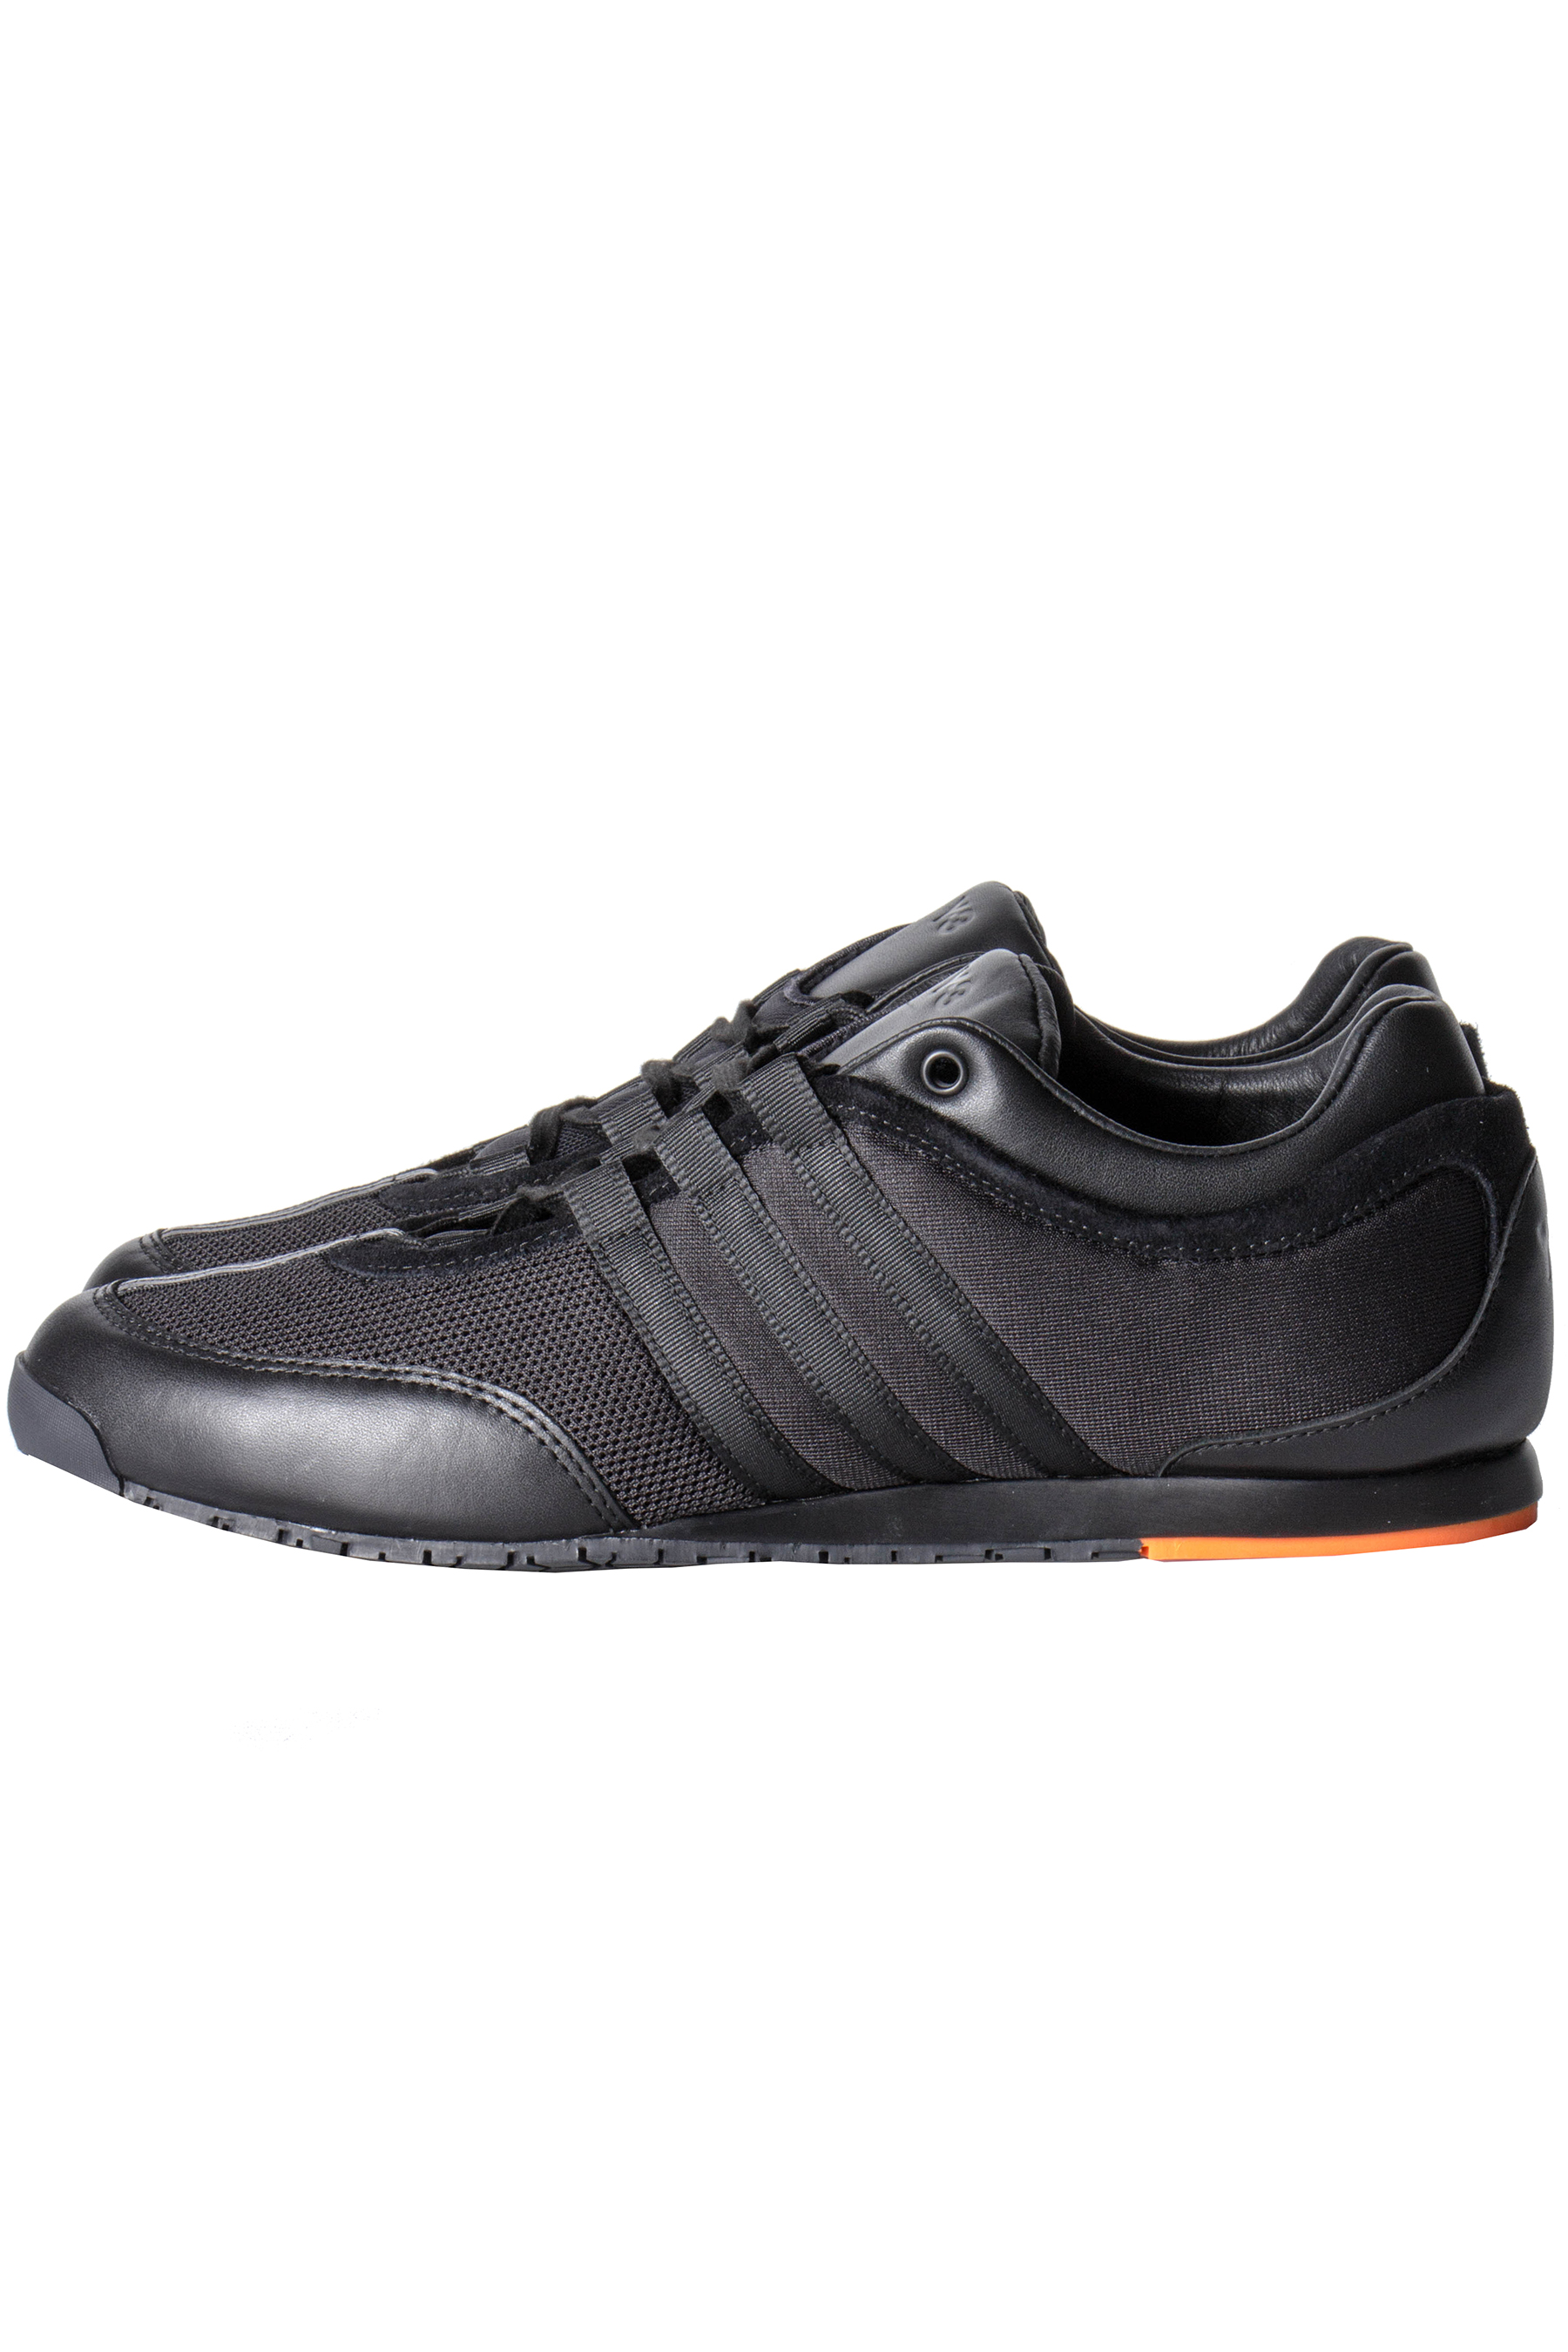 Y-3 Sneakers Boxing | Sneakers | Shoes